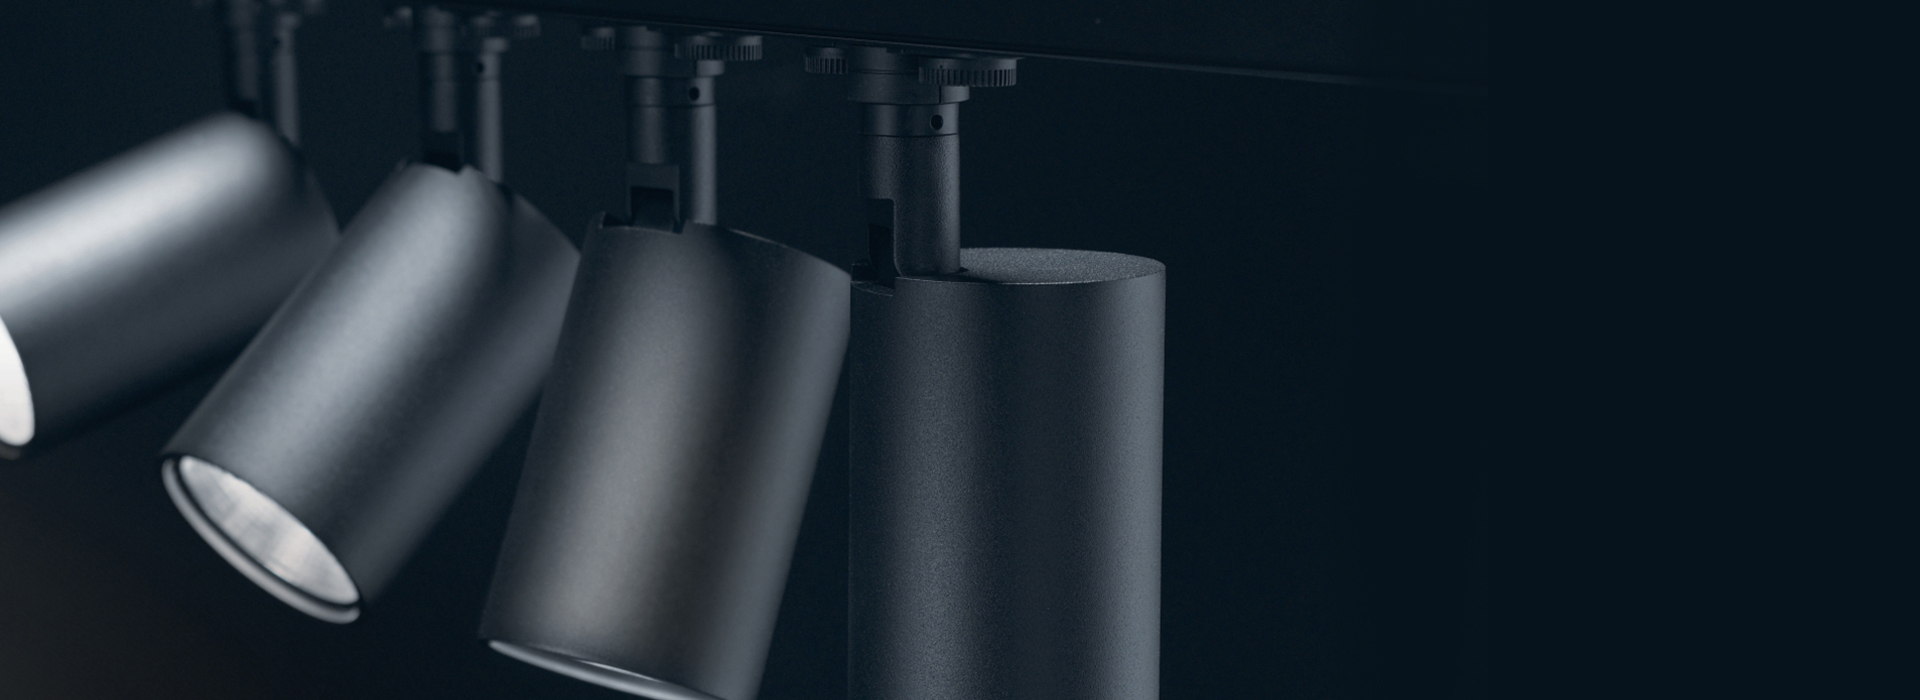 Aria - Zaneen: distributor for technical and compact architectural lighting distributor for North America